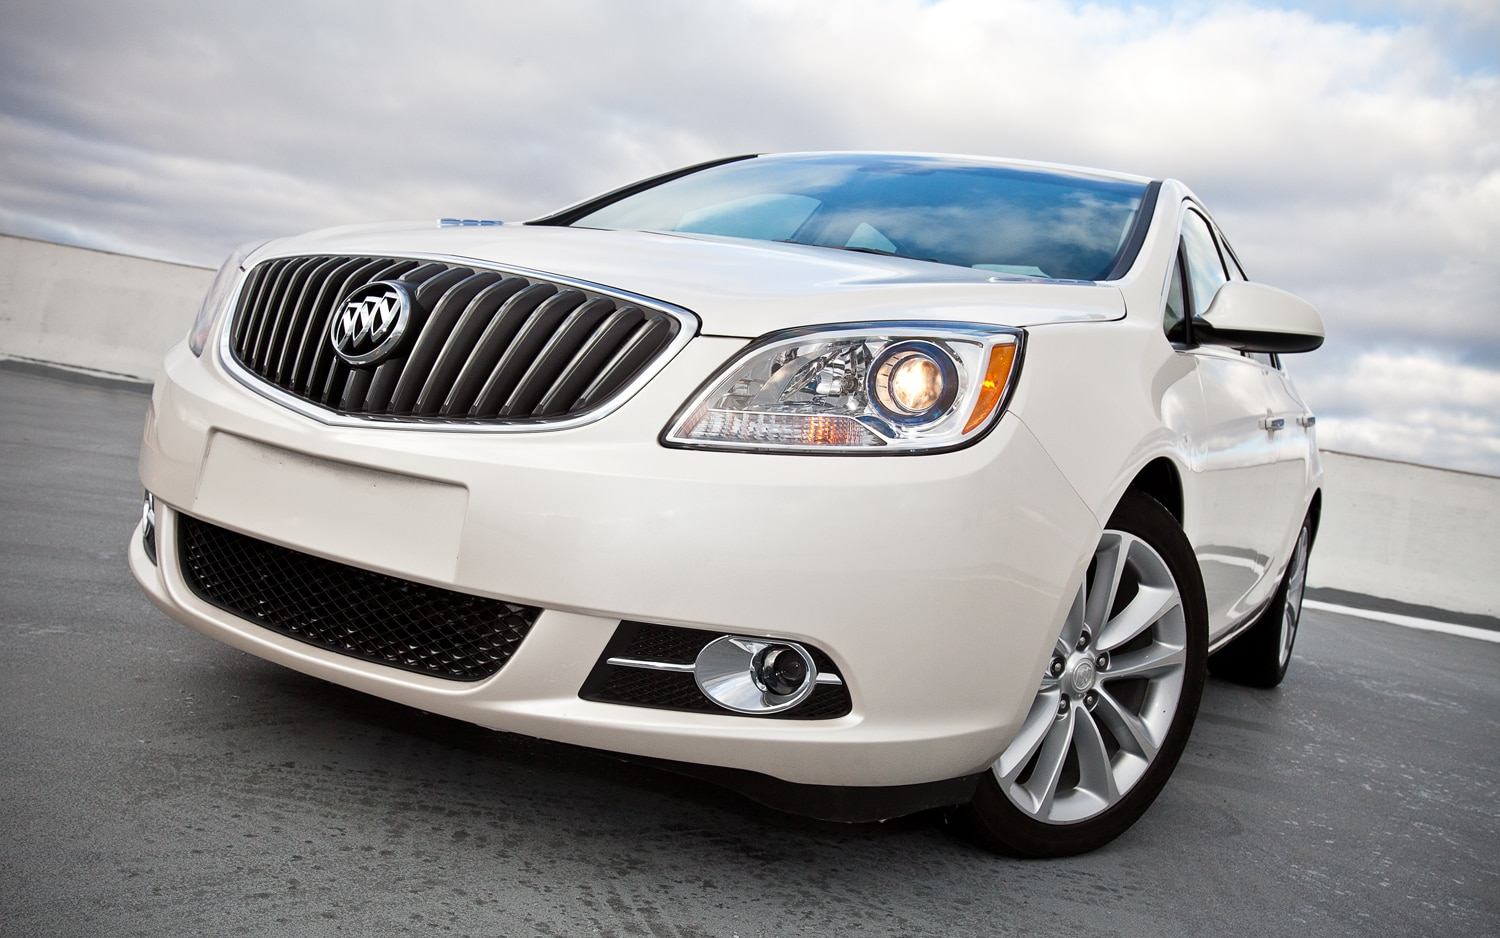 Buick Verano Canceled For U.S. After 2017, Says Report